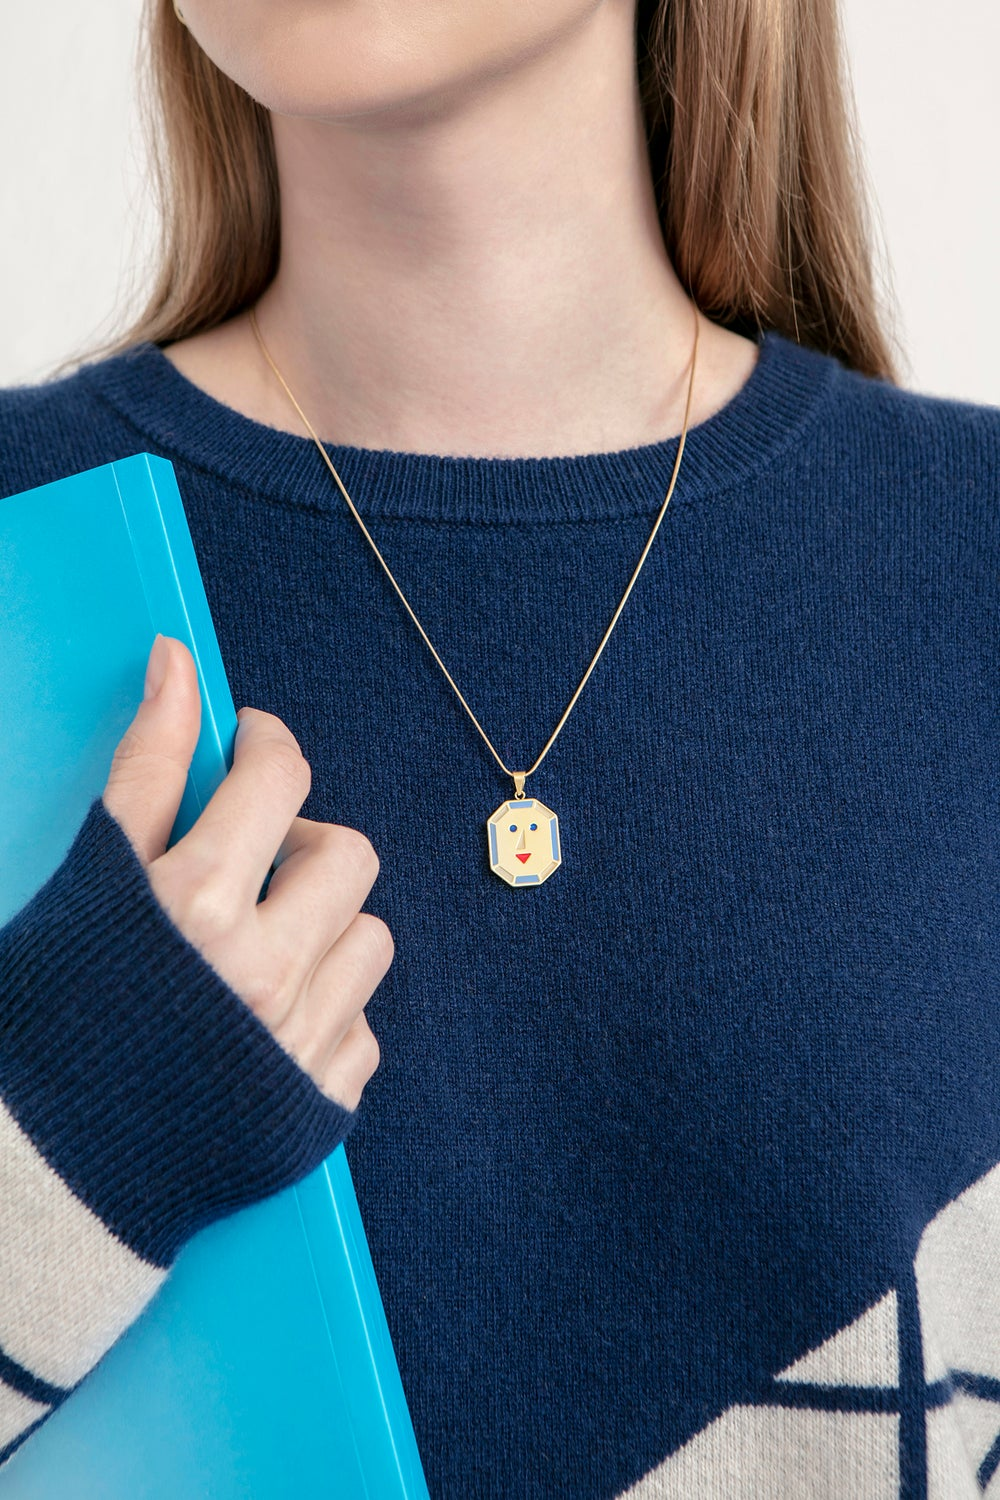 JOY + PEACE - reversible necklace- Blue/Light Blue• Stainless steel